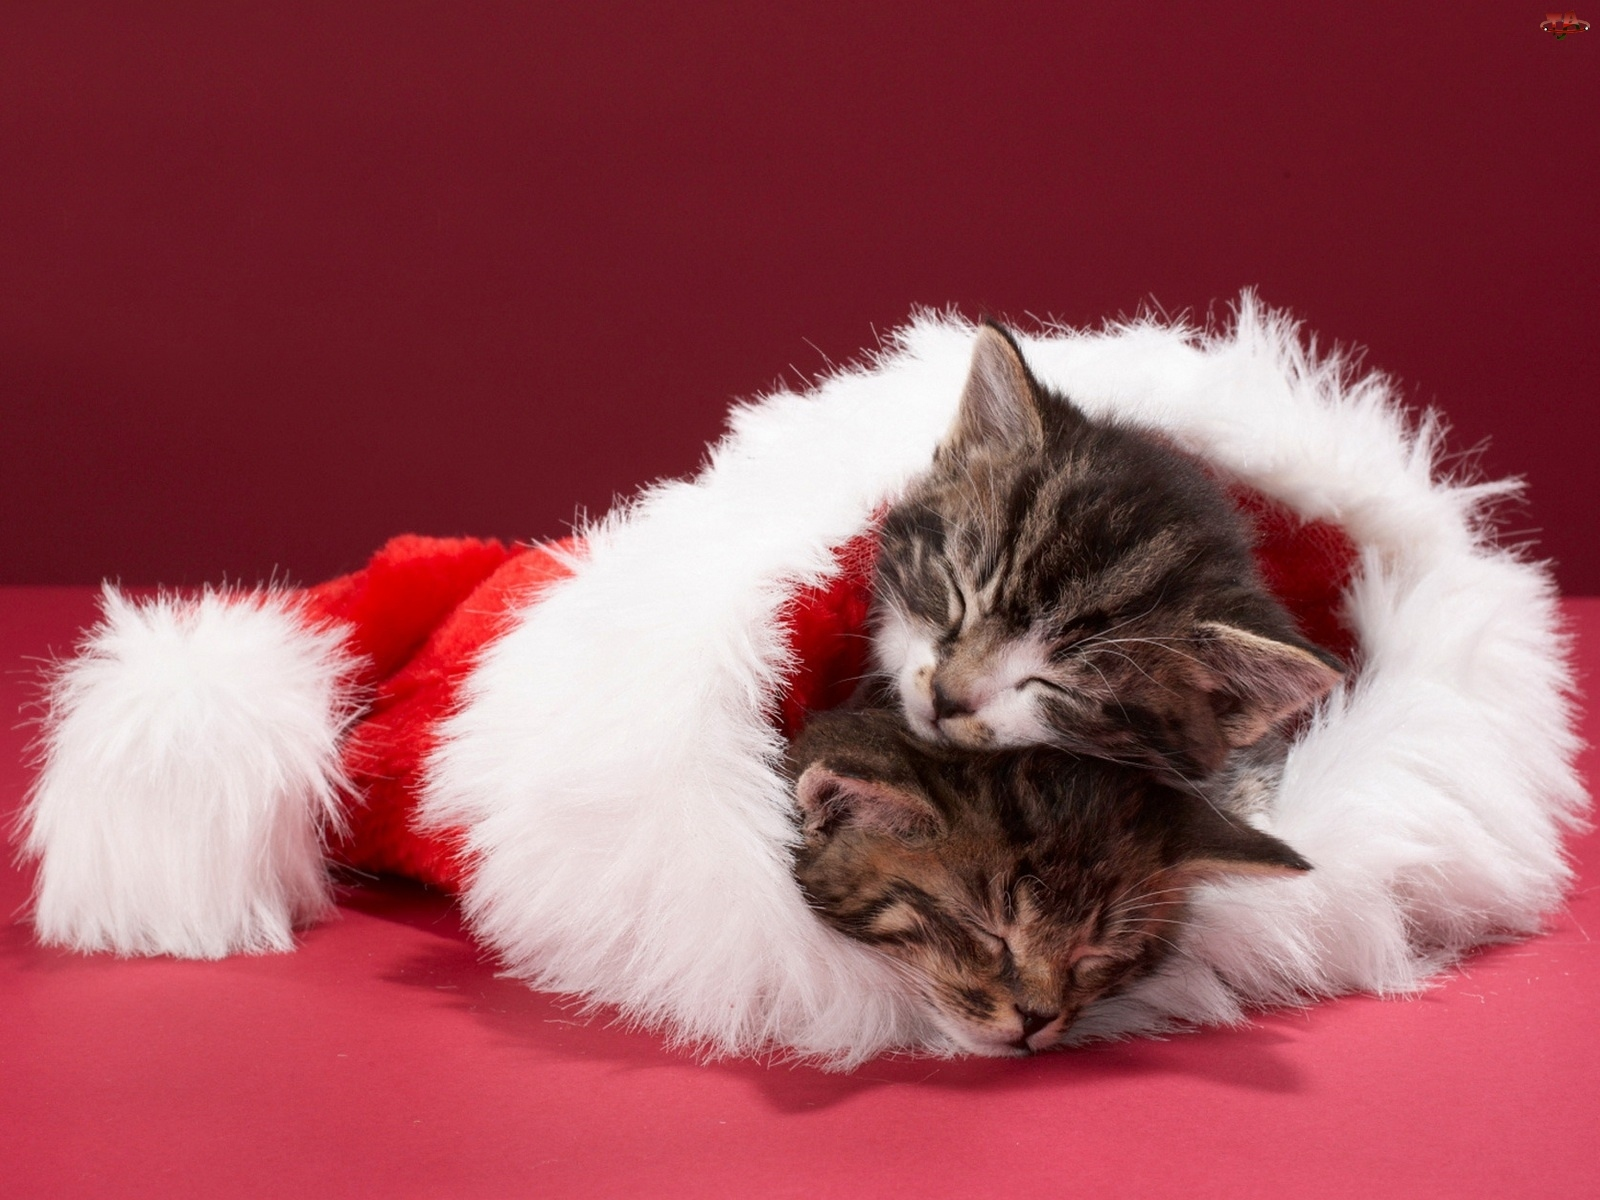 cats images christmas kittens hd wallpaper and background